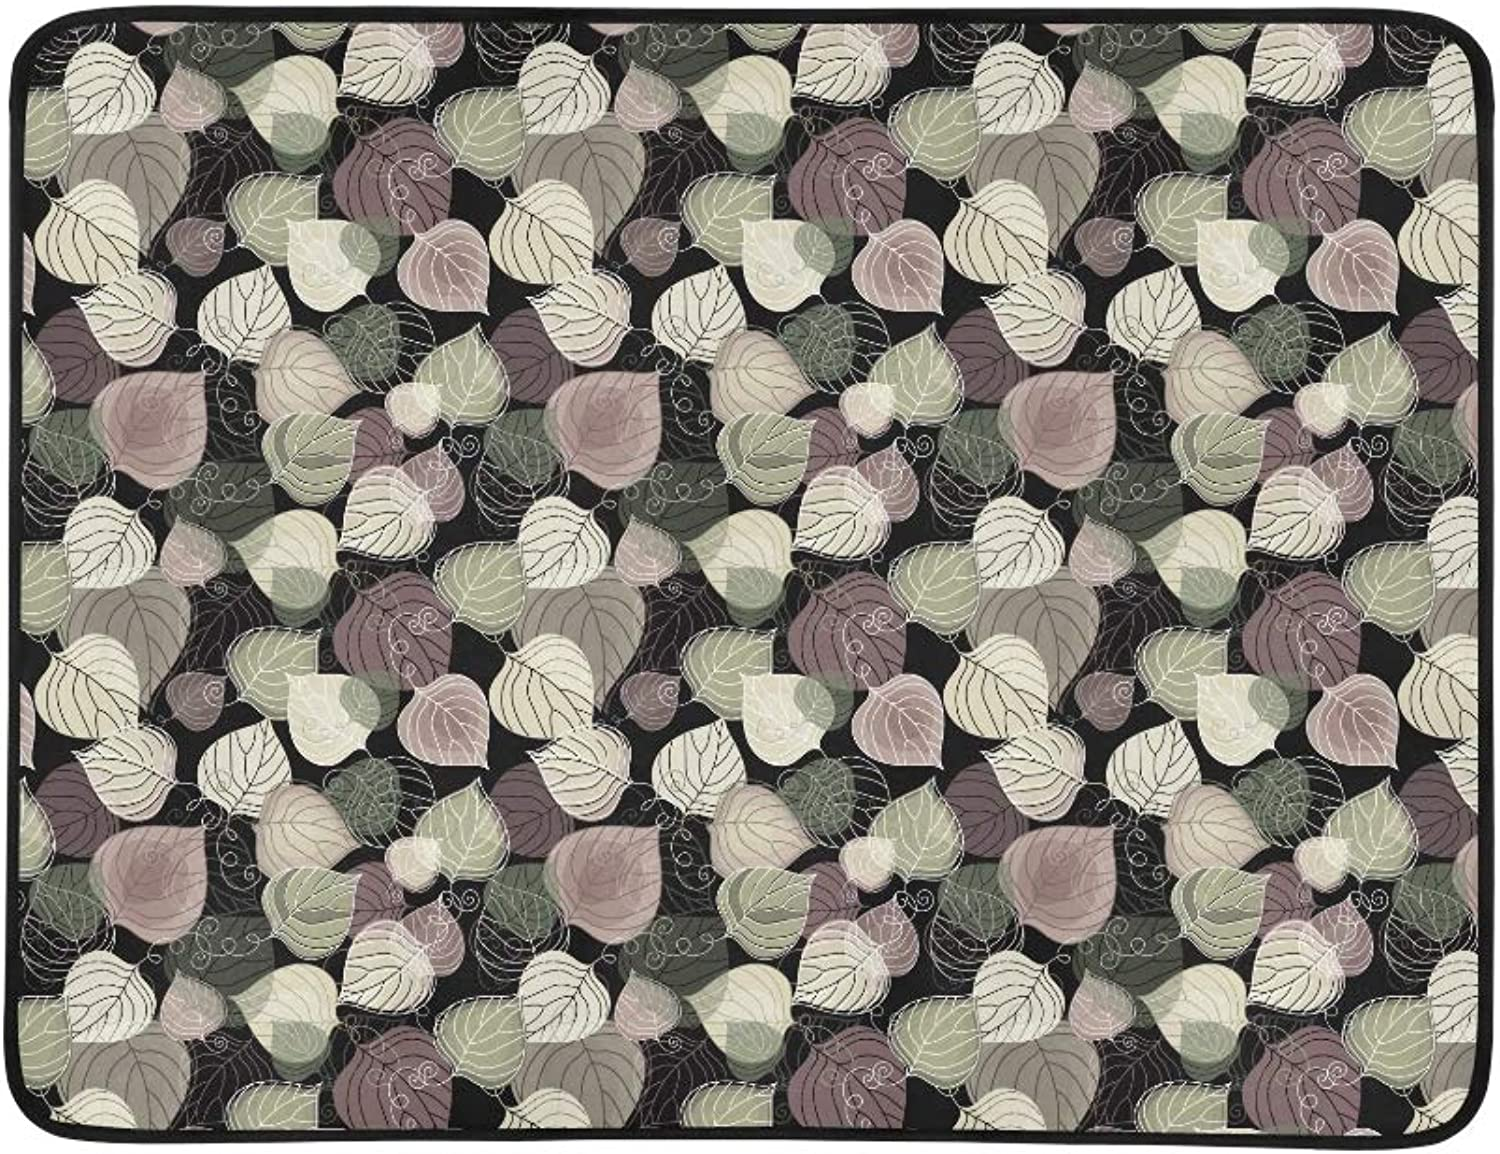 Dark Floral Pattern with Transparent Leaves Pattern Portable and Foldable Blanket Mat 60x78 Inch Handy Mat for Camping Picnic Beach Indoor Outdoor Travel